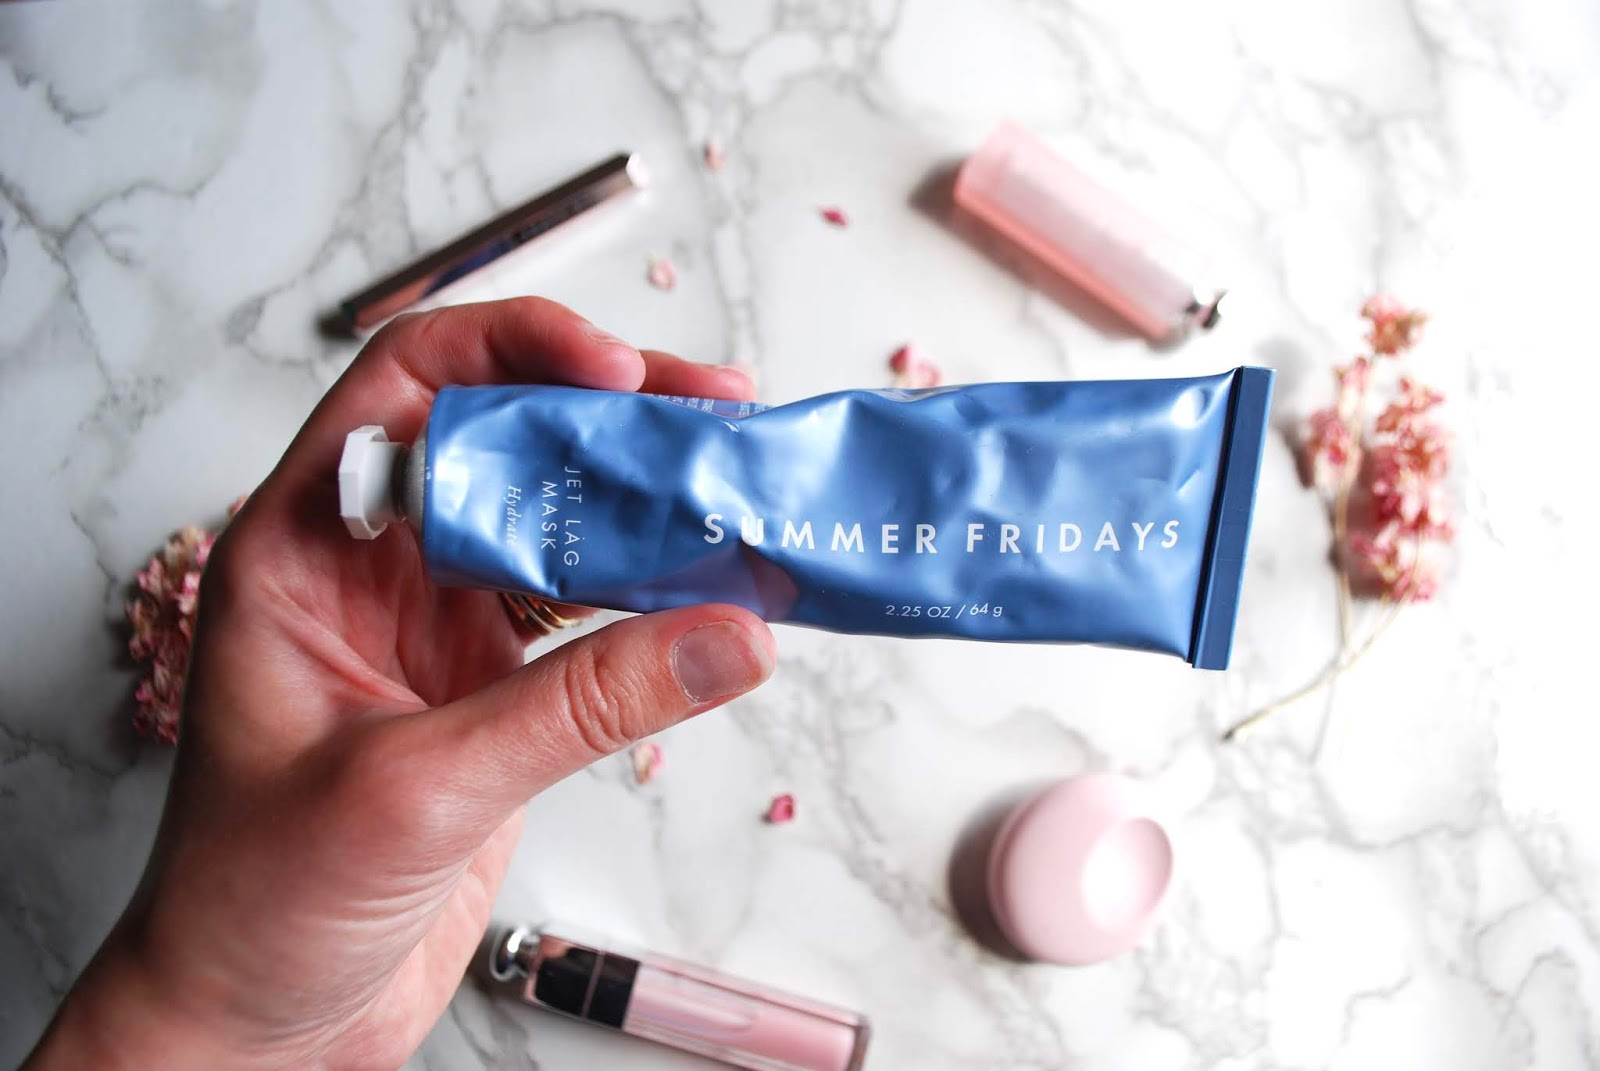 summer fridays jet lag mask: worth the hype?